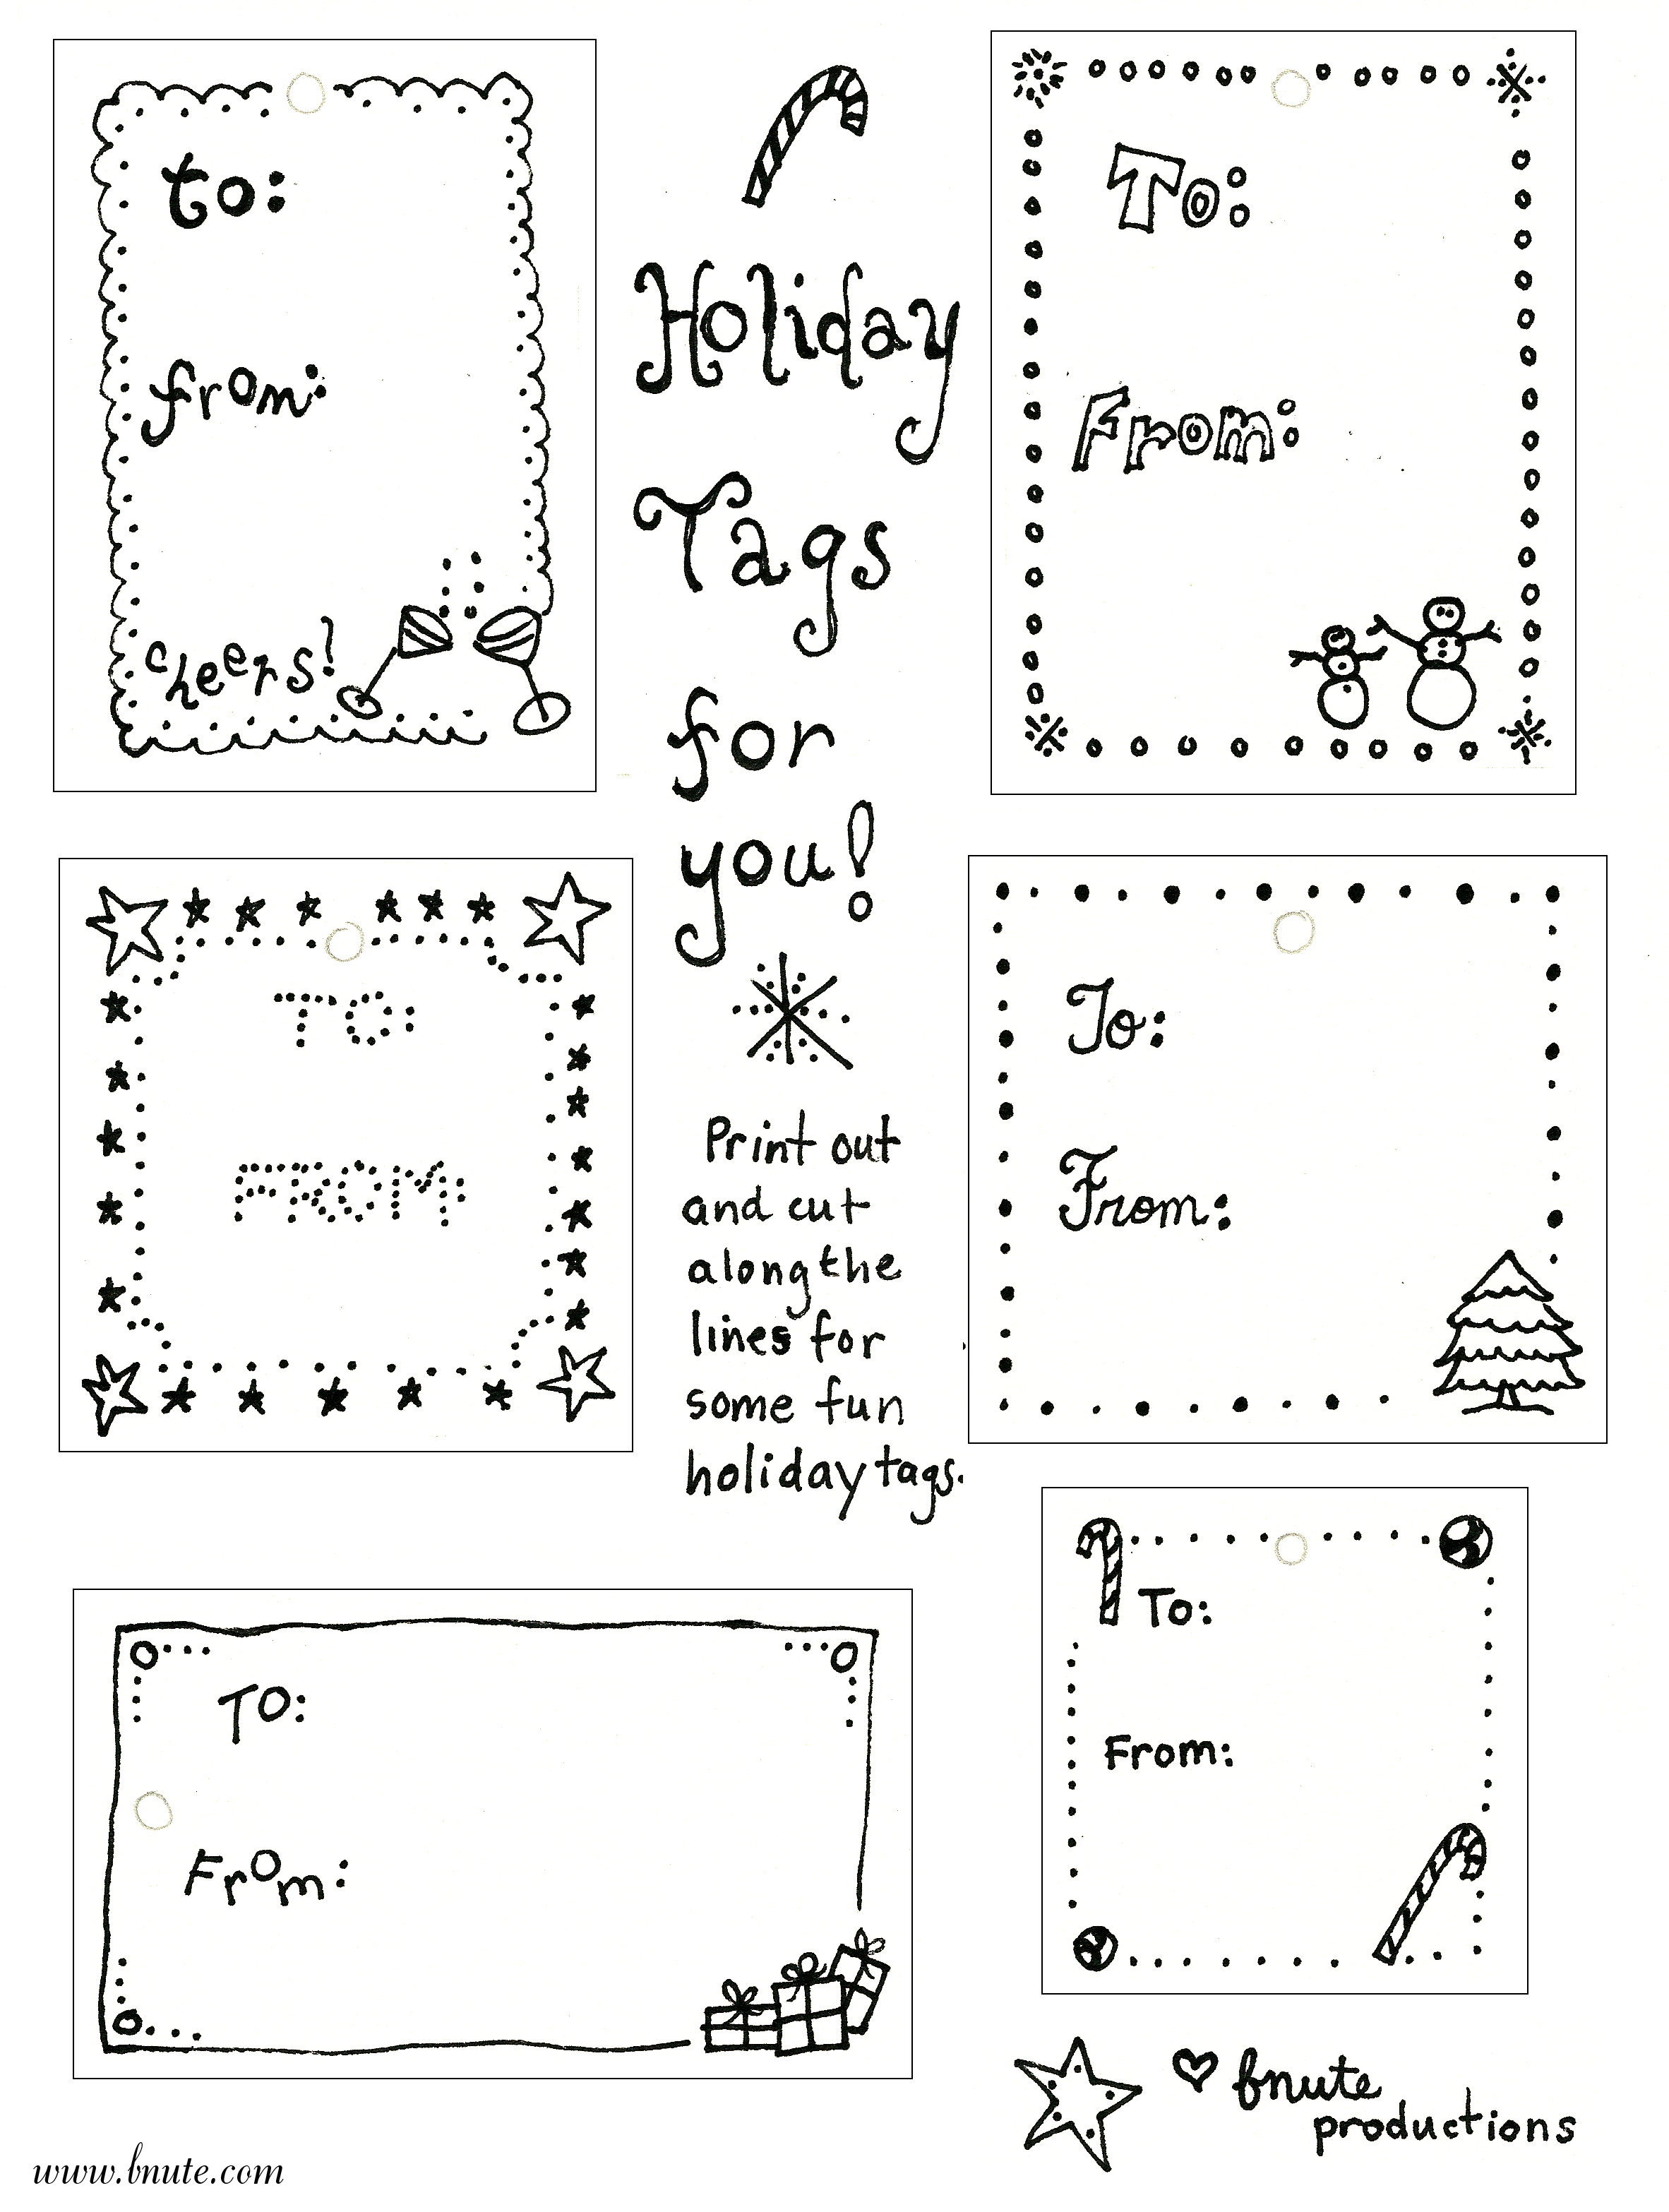 picture about Printable Christmas Tags Black and White called bnute productions: Printable Holiday vacation Tags for that Previous